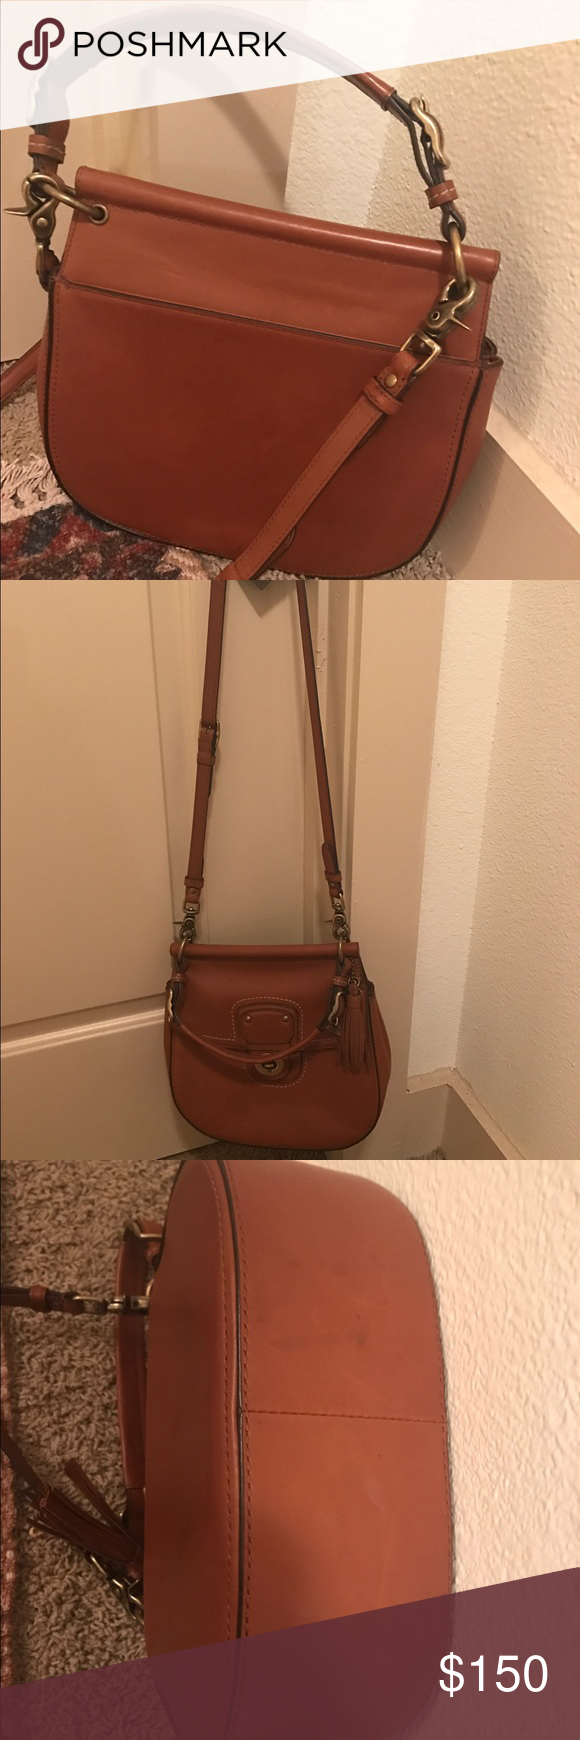 Coach Legacy Cross body Can be worn as a cross body or by the arm strap. Long pocket on the back side with a pocket on the inside. Coach Bags Crossbody Bags